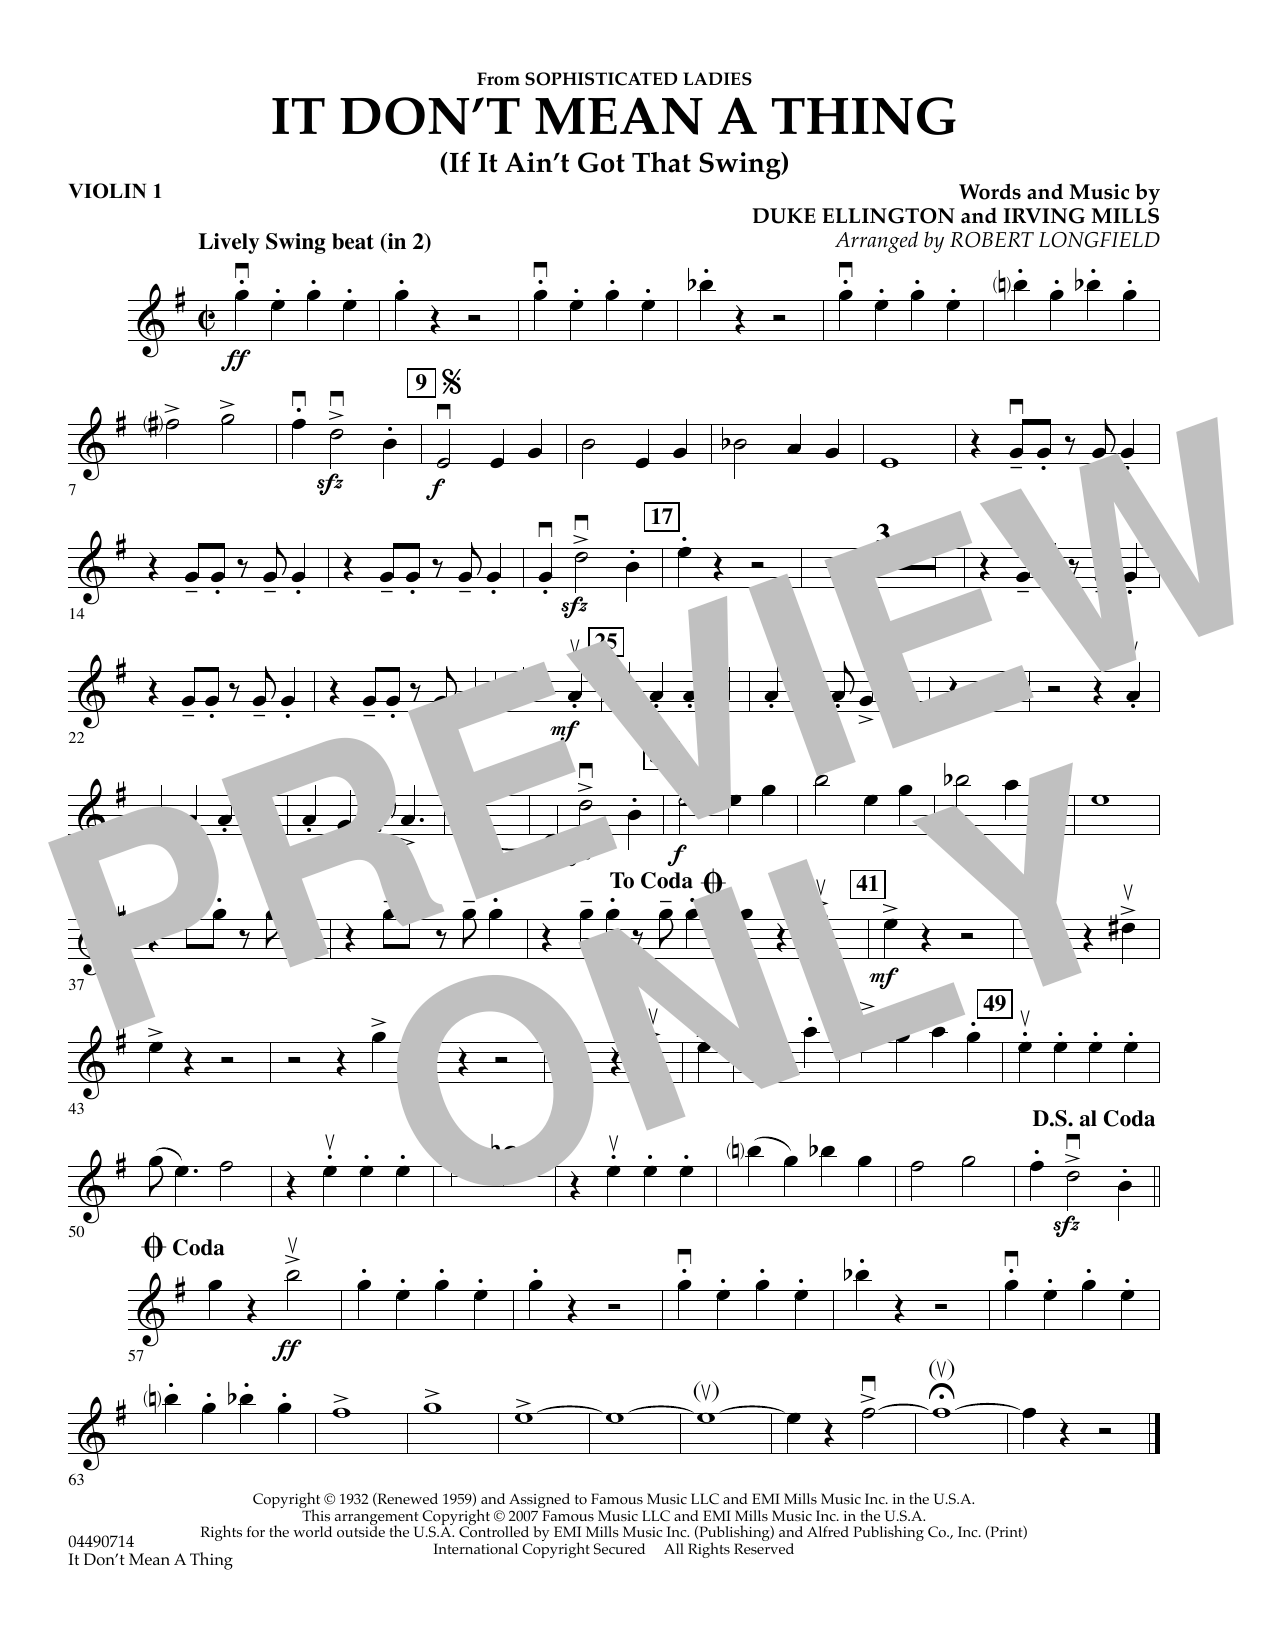 It Don't Mean A Thing - Violin 1 Sheet Music